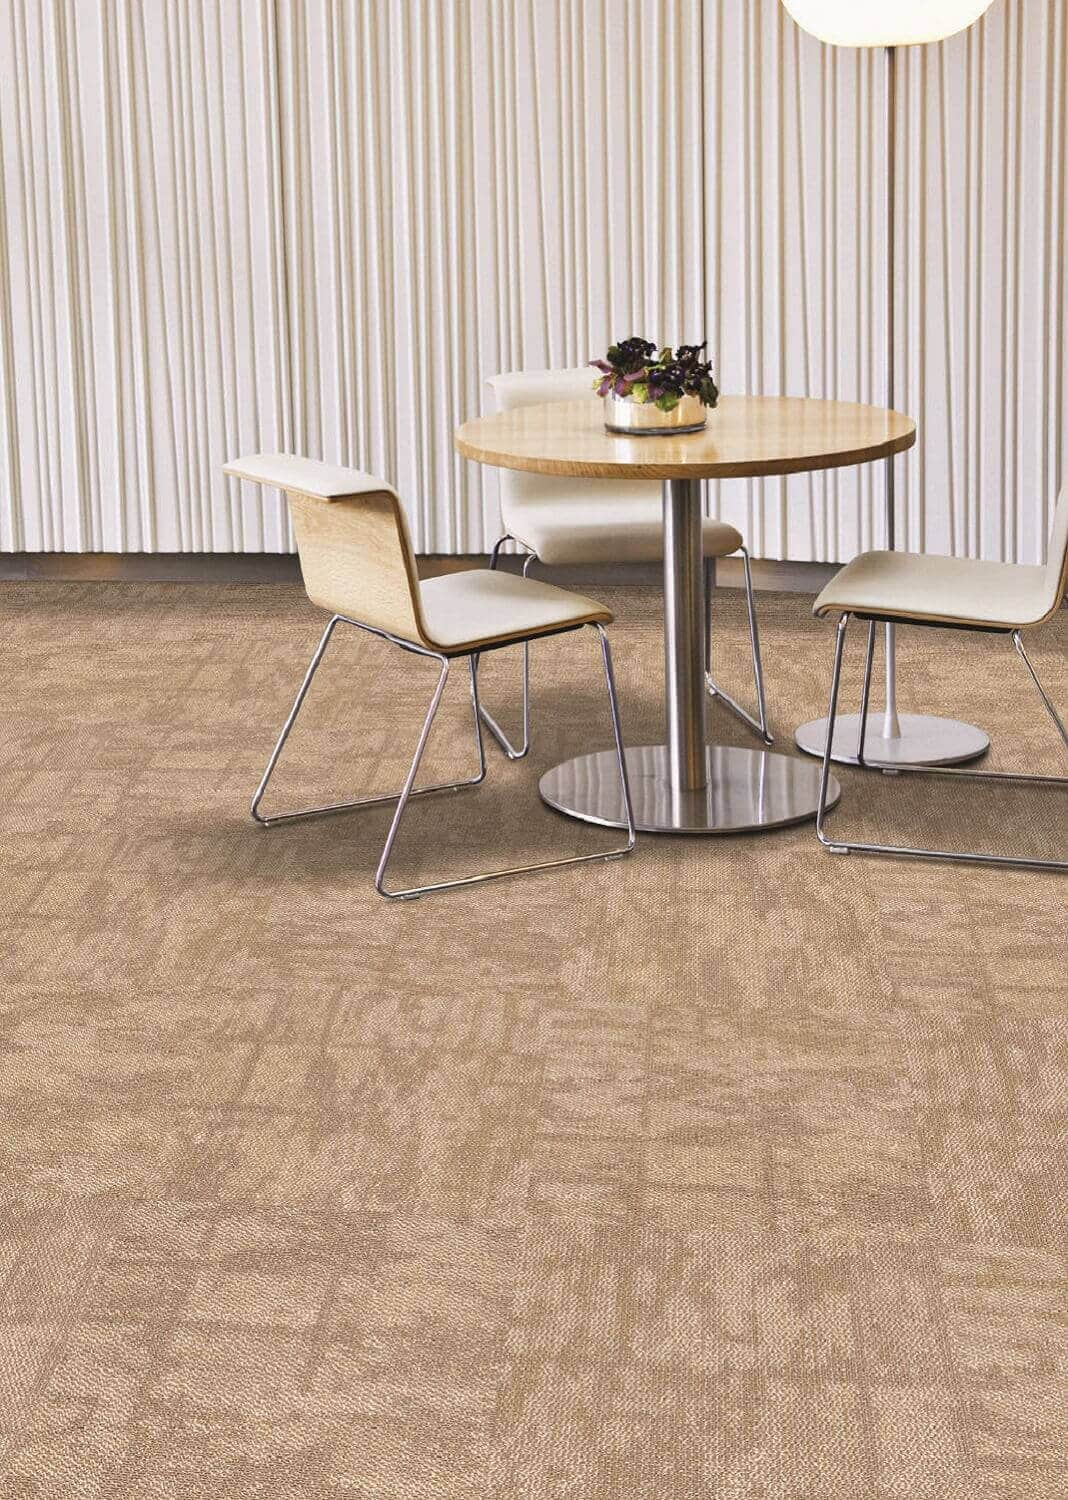 Shop Office Carpet Tiles in Dubai